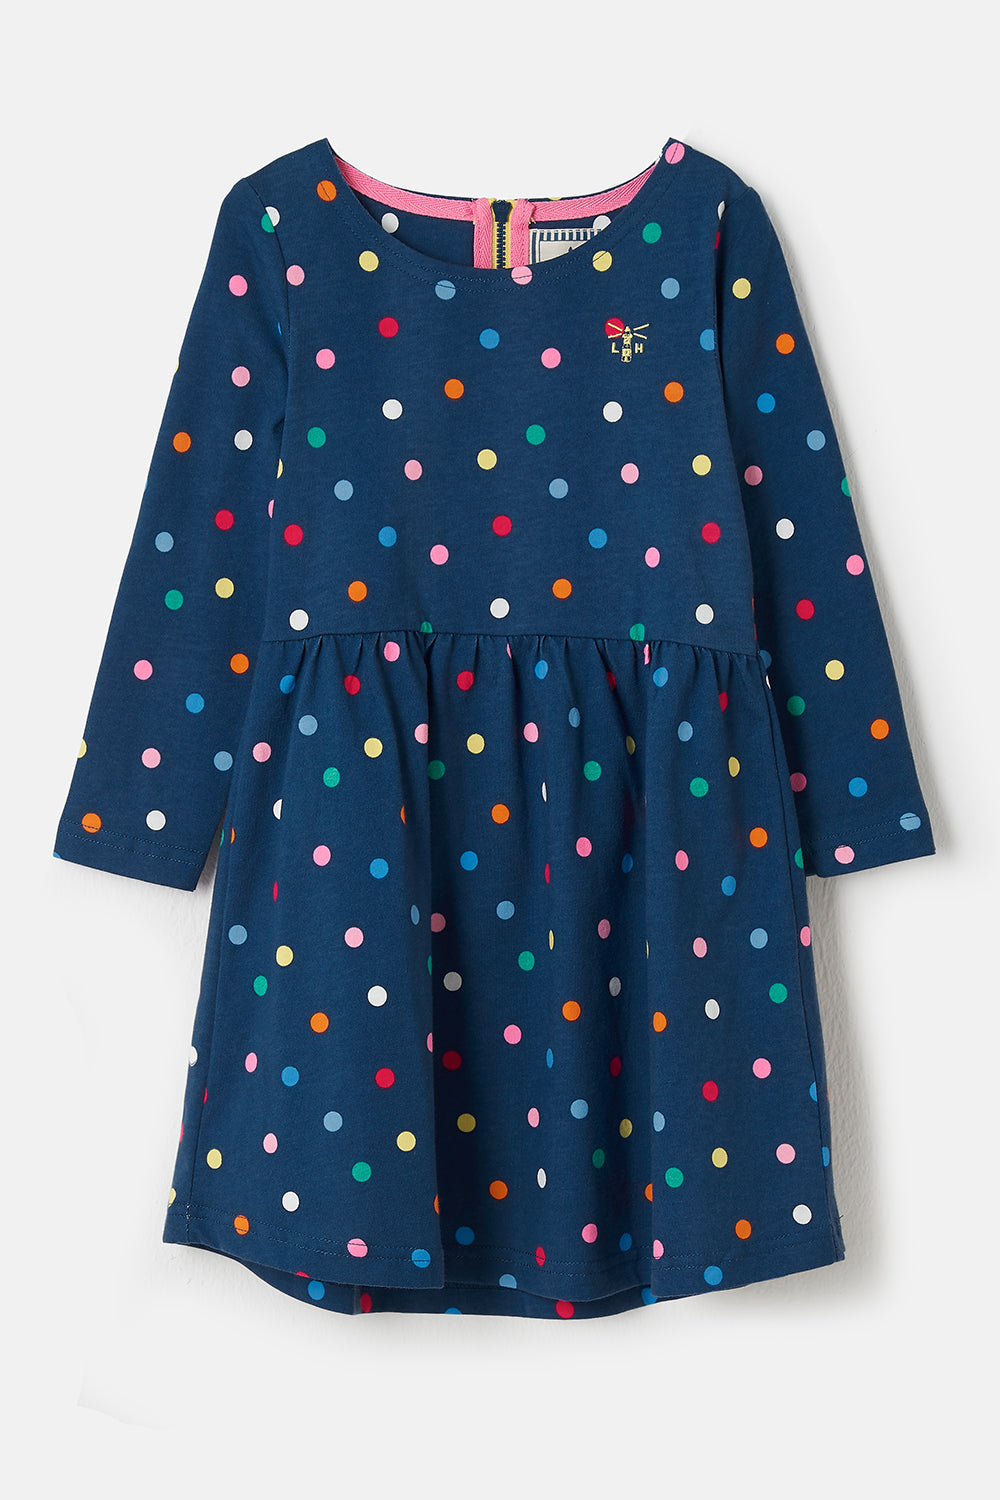 Lighthouse Ellie - Girl's Cotton Dress - Dot Print